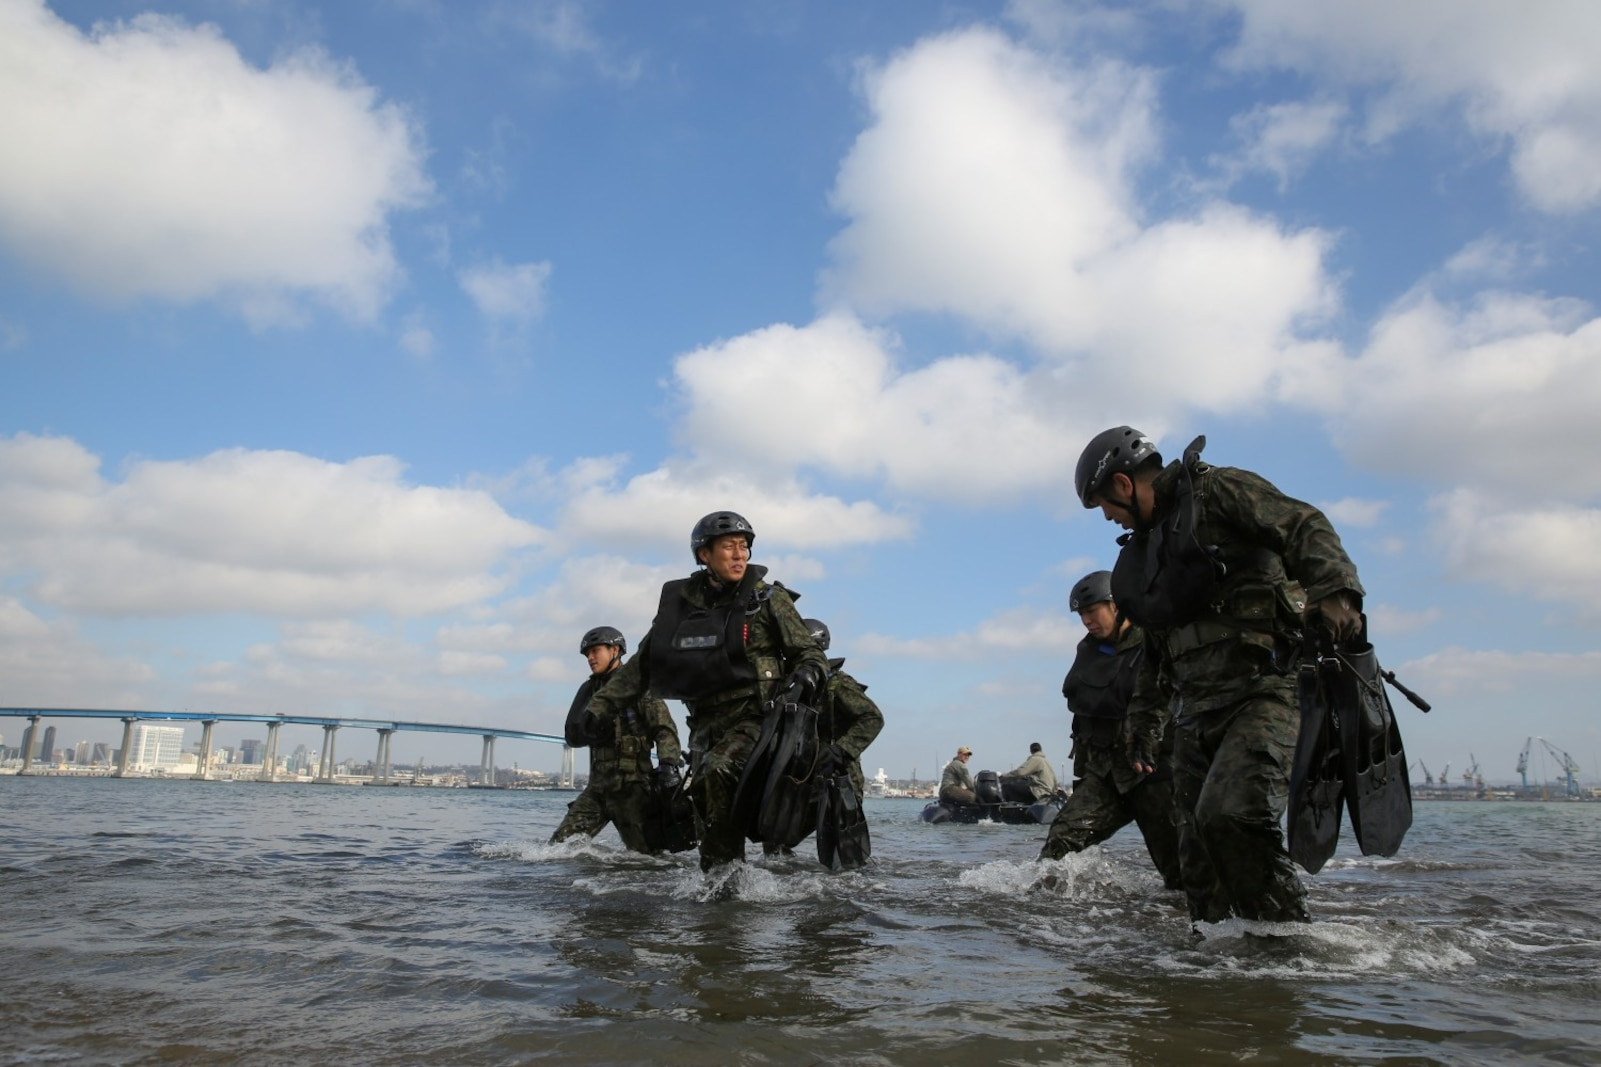 Soldiers with the Japan Ground Self-Defense Force make their way onto Seal Beach while conducting Helo Cast training with 1st Reconnaissance Battalion, 1st Marine Division, during Exercise Iron Fist 2014 aboard Naval Amphibious Base Coronado, Calif., Jan. 27, 2014. Iron Fist is an amphibious exercise that brings together Marines and sailors from the 15th Marine Expeditionary Unit, other I Marine Expeditionary Force units, and soldiers from the JGSDF, to promote military interoperability and hone individual and small-unit skills through challenging, complex and realistic training. (U.S. Marine Corps photo by Cpl. Emmanuel Ramos/Released)